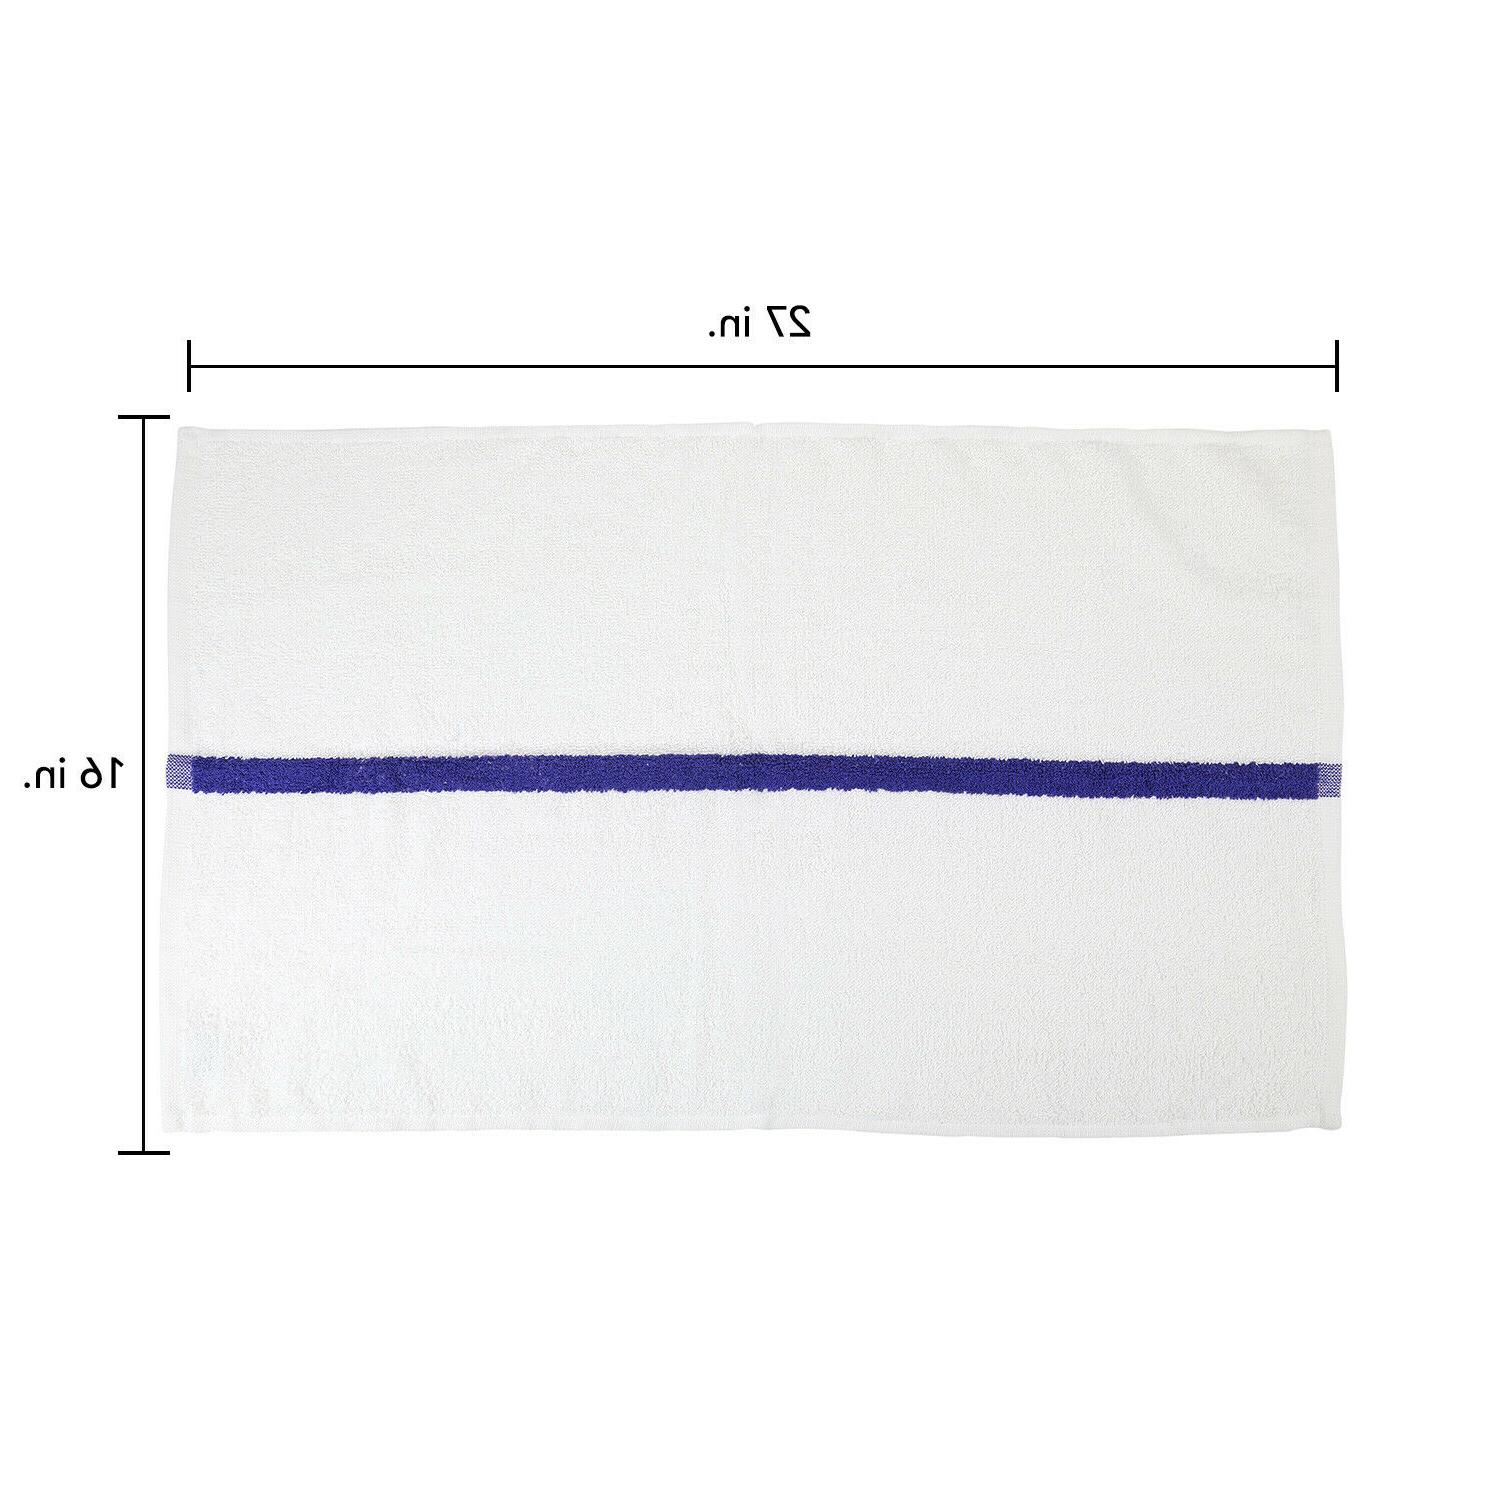 12 Pack Hand x 27 Cotton Workout Towels